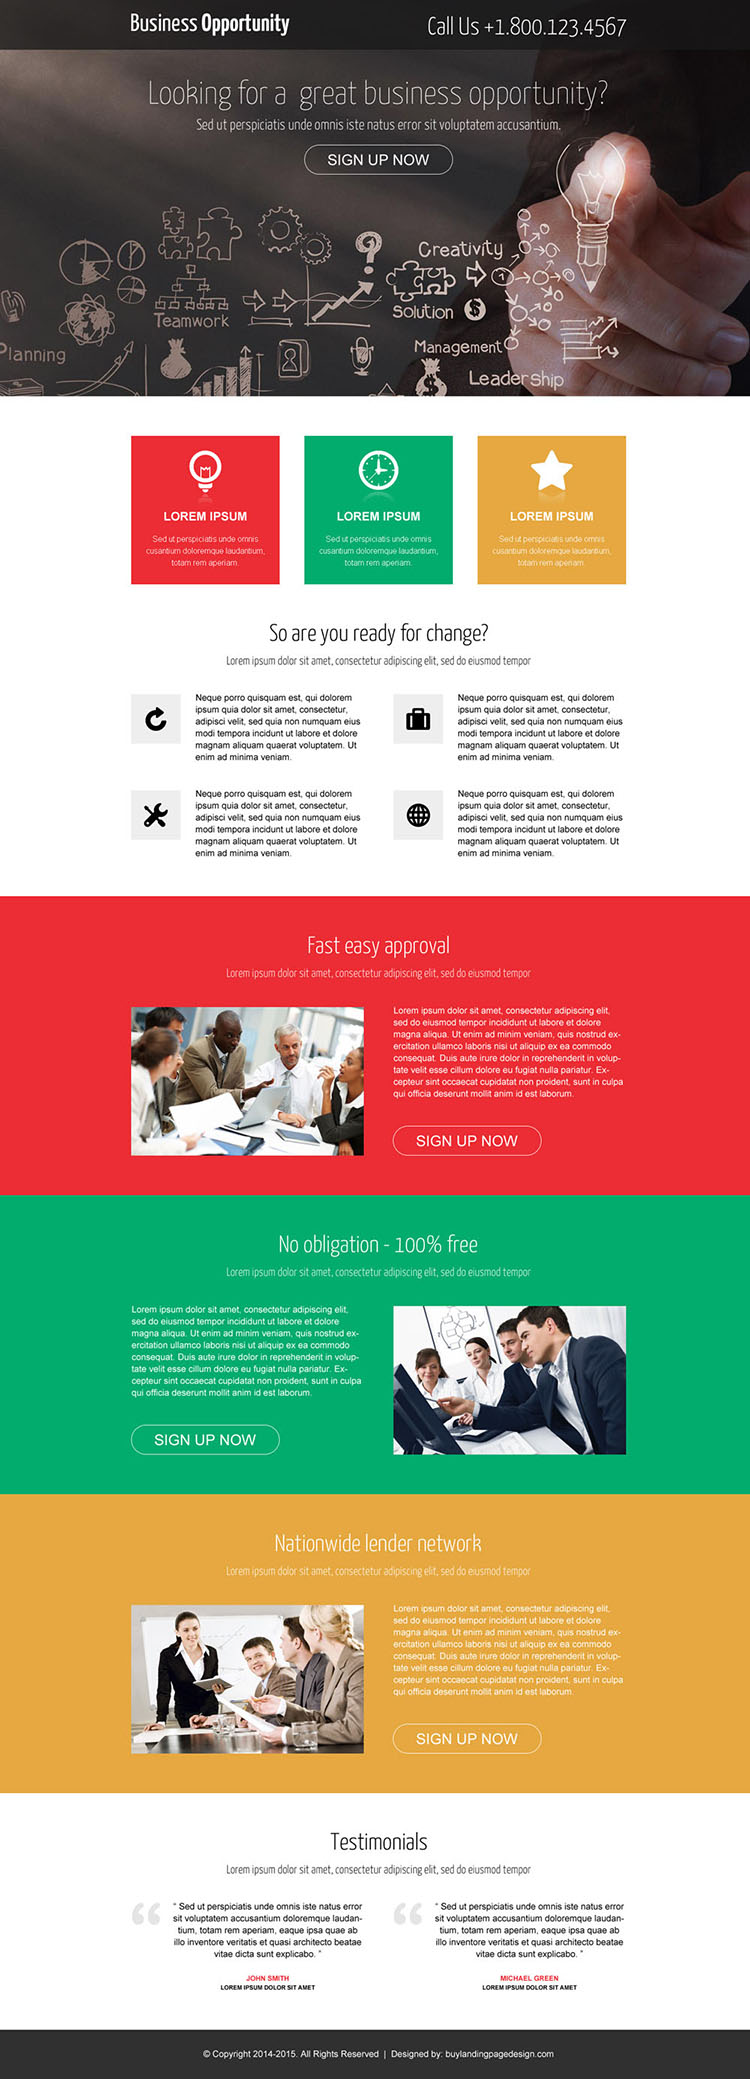 business registration or sign up call to action converting landing page design template